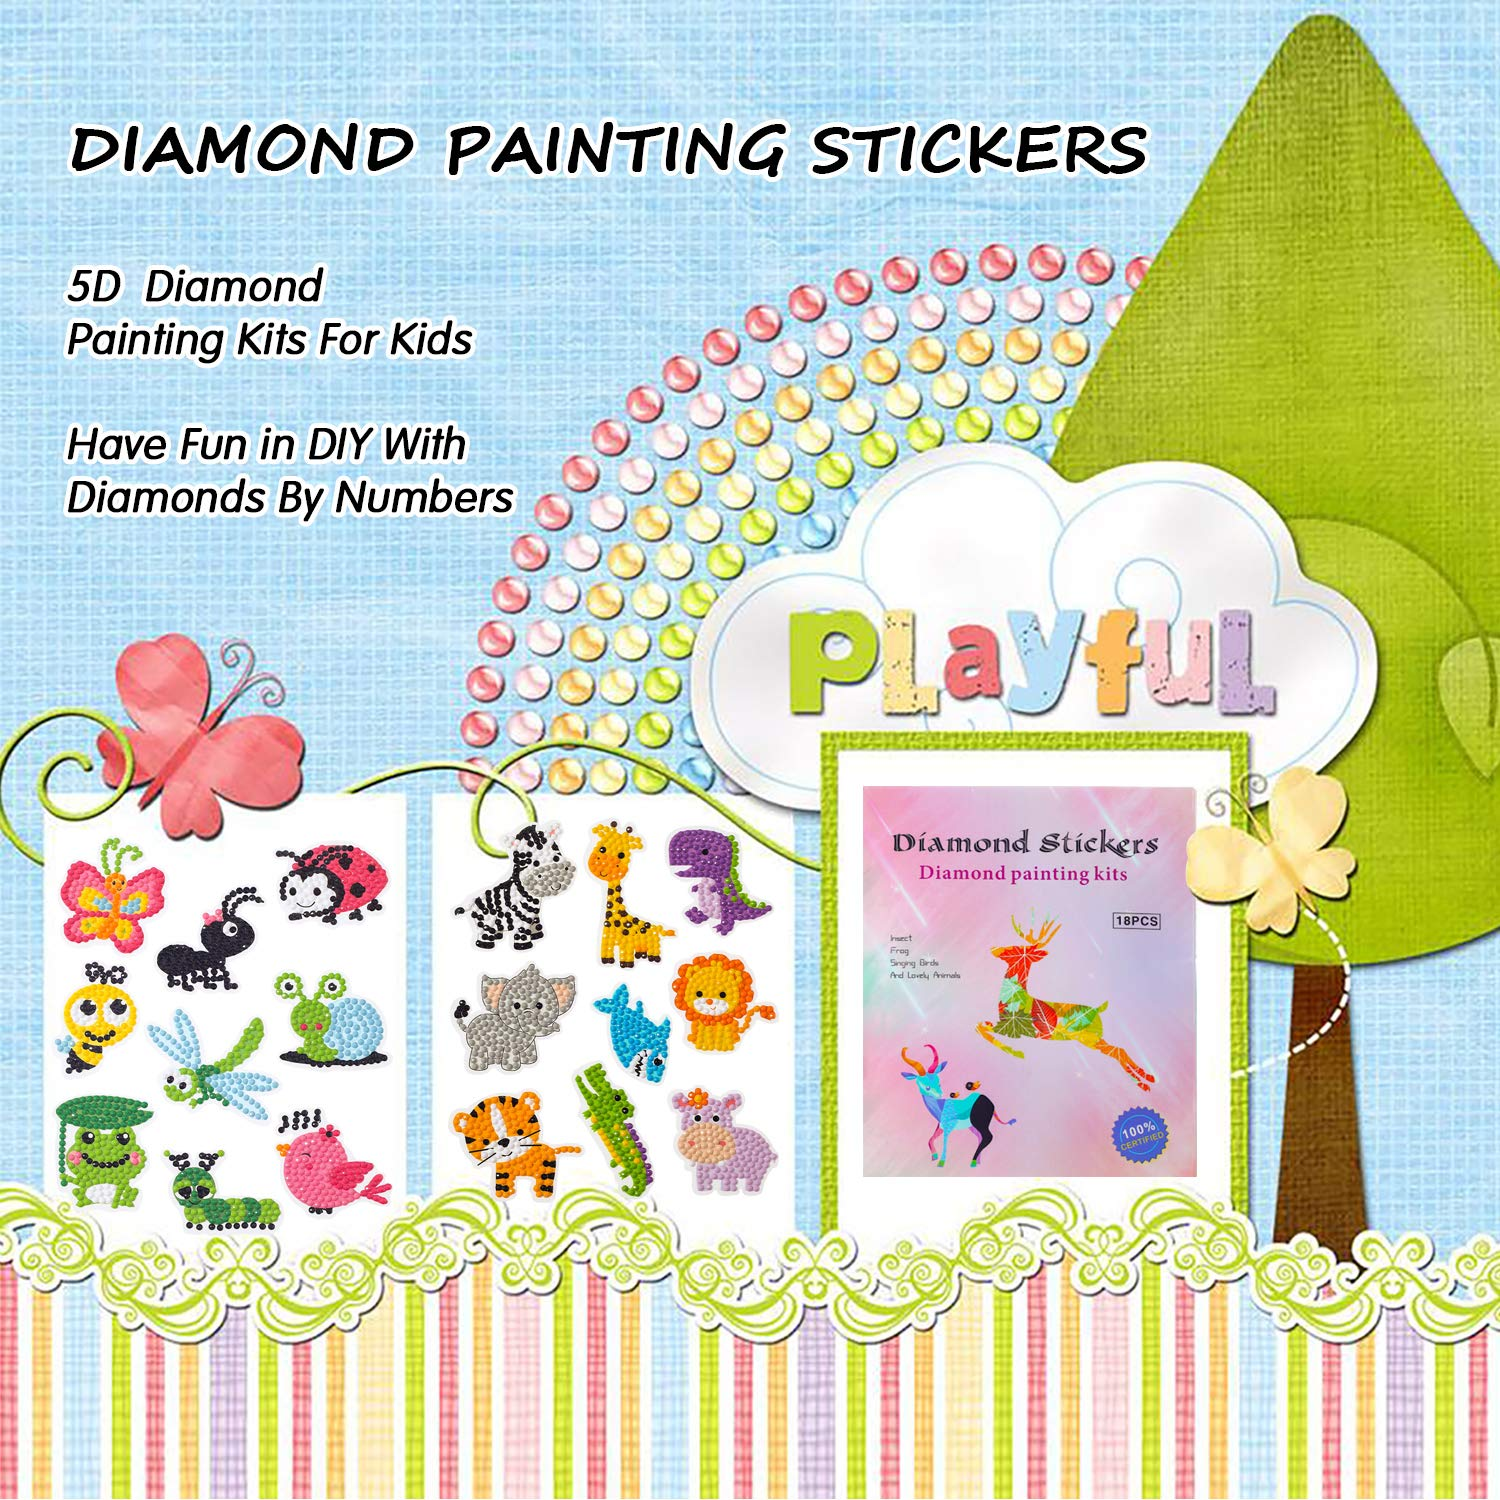 CUENE 18pcs 5D Diamond Painting Kits for Kids Cartoon Diamond Sticker Painting Environmentally Friendly Resin Diamond Painting Stickers Kits for Children Boys and Girls Gifts